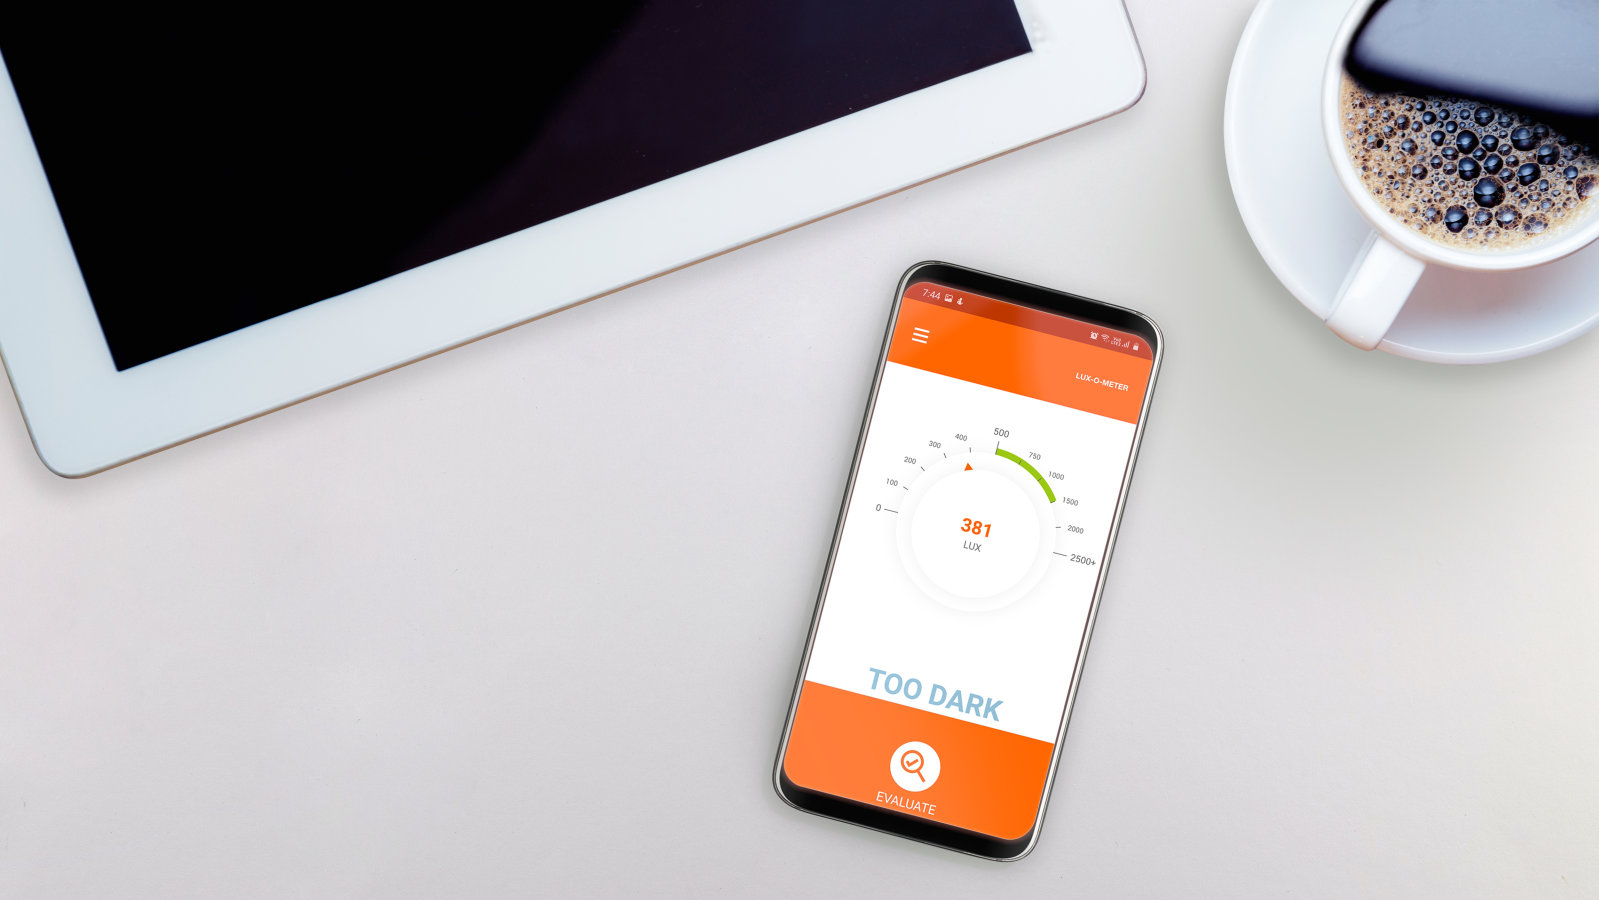 Smartphone with Lux-o-meter app on a desk